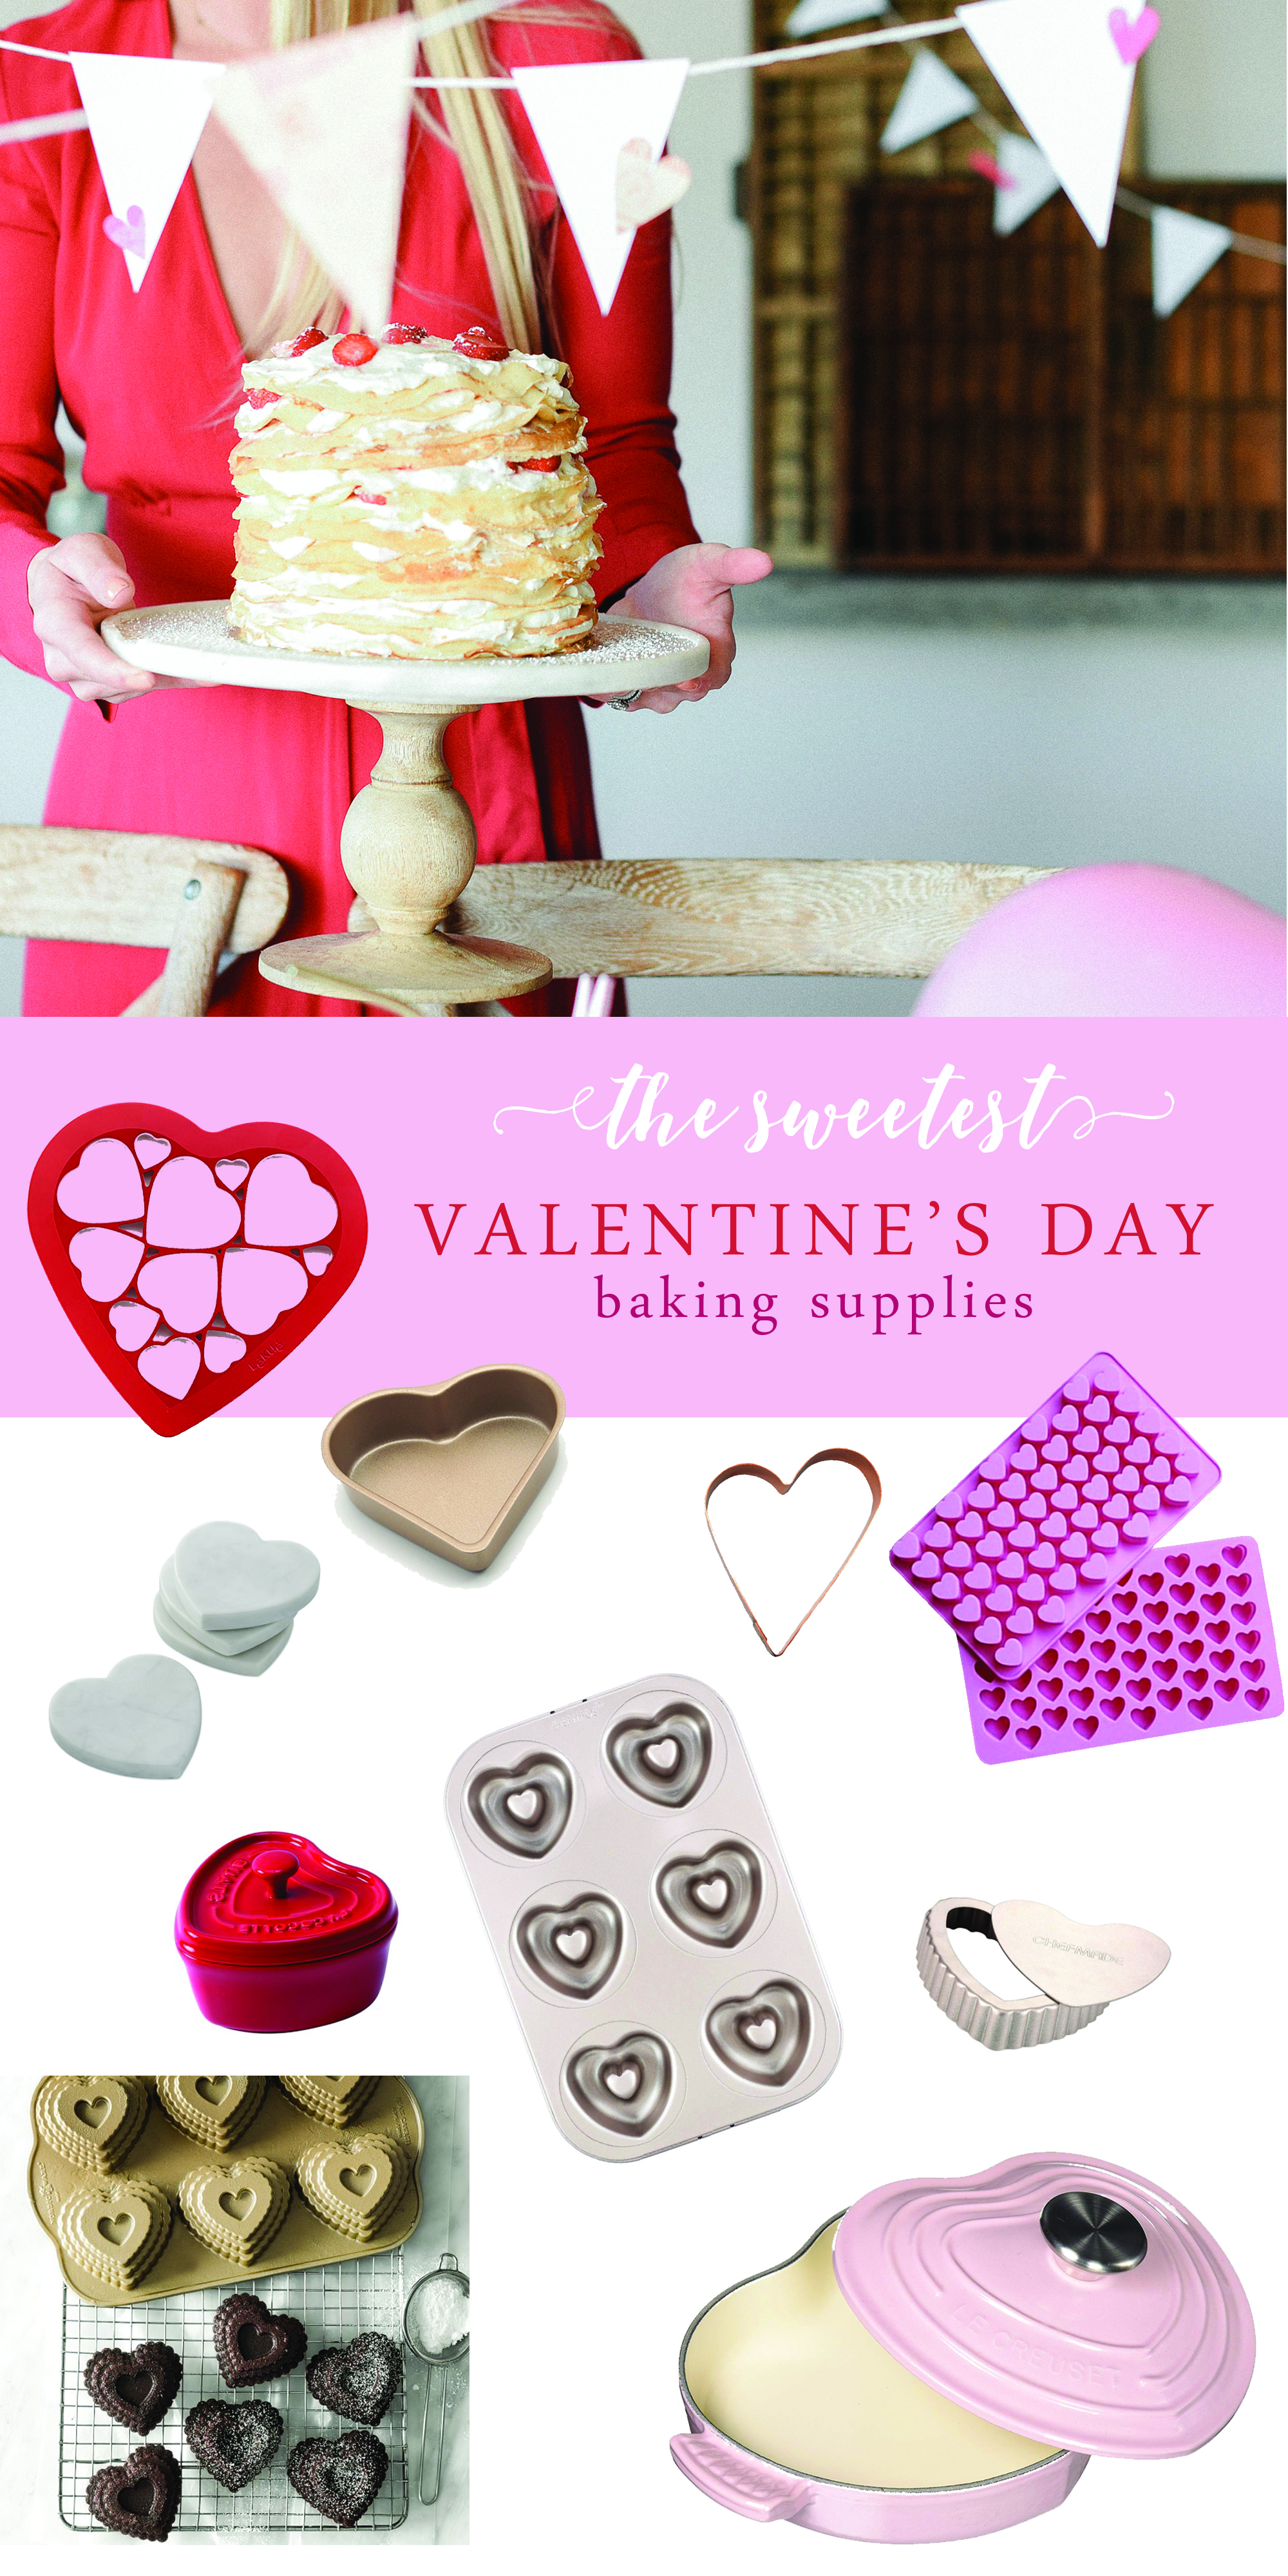 Valentine's Day baking ideas and supplies best amazon finds for Valentine's Day | #valentinesday #valentinesdaybaking